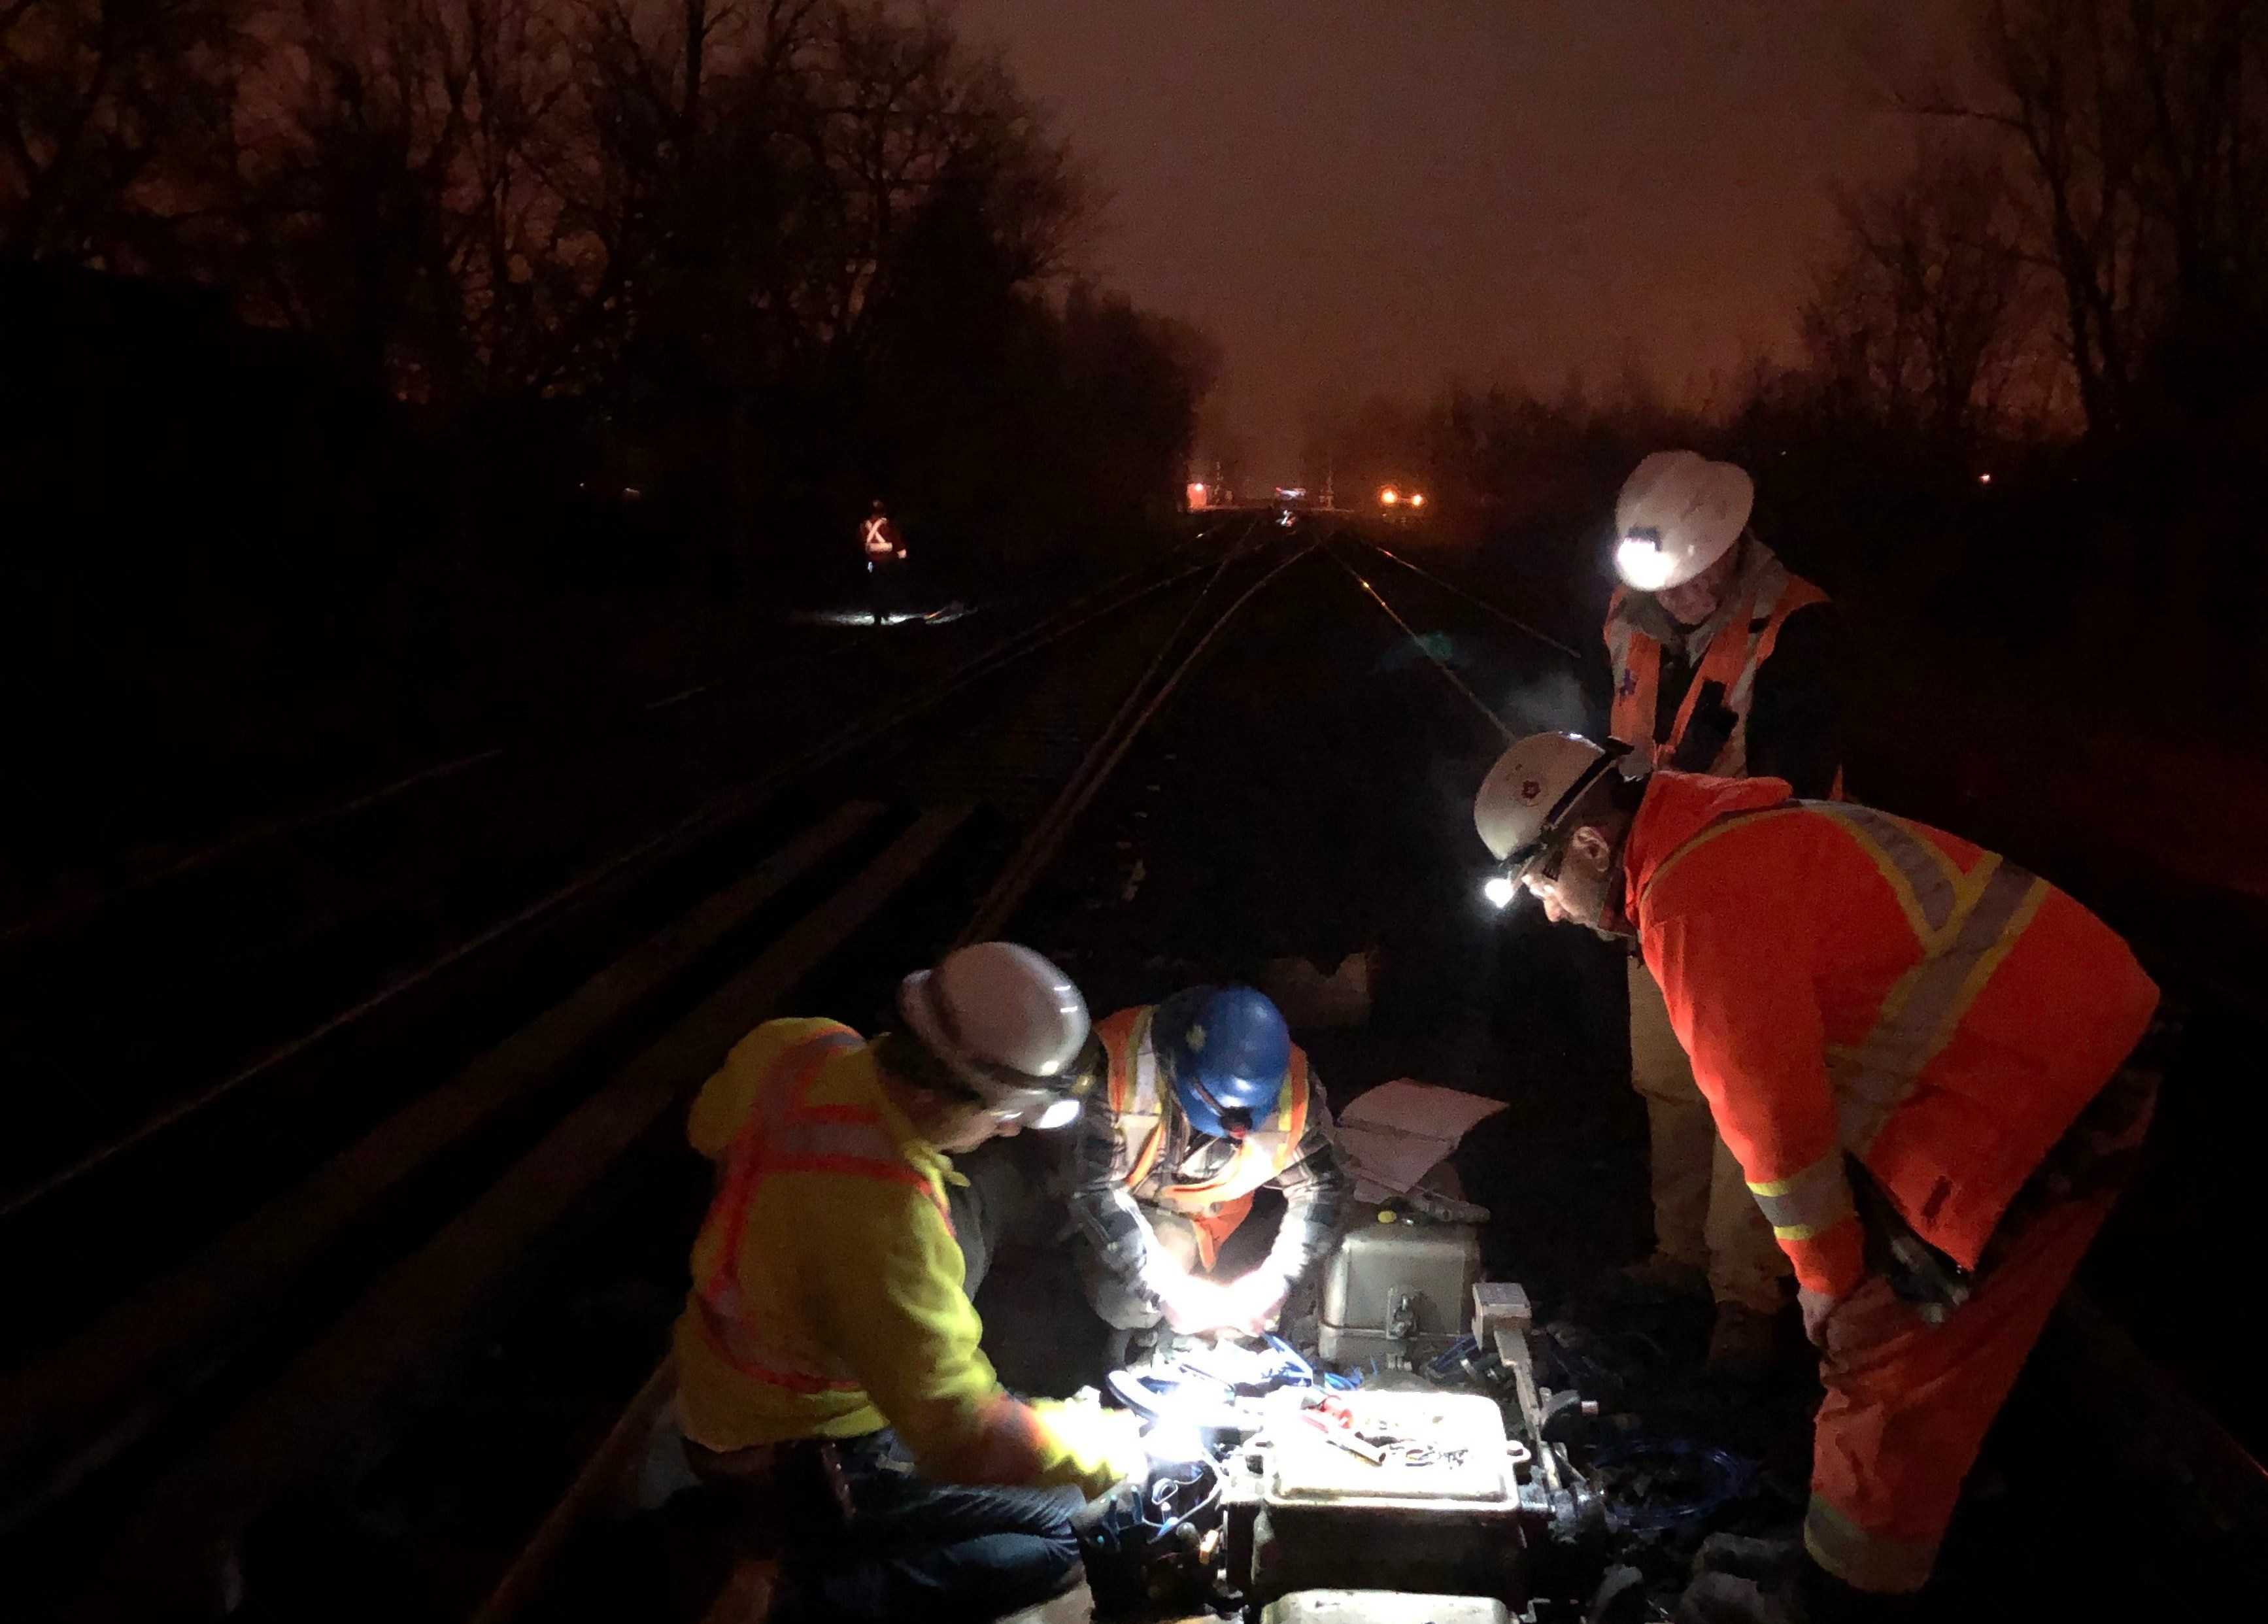 Four workmen toil away in the dark, as they peer into a piece of rail equipment.